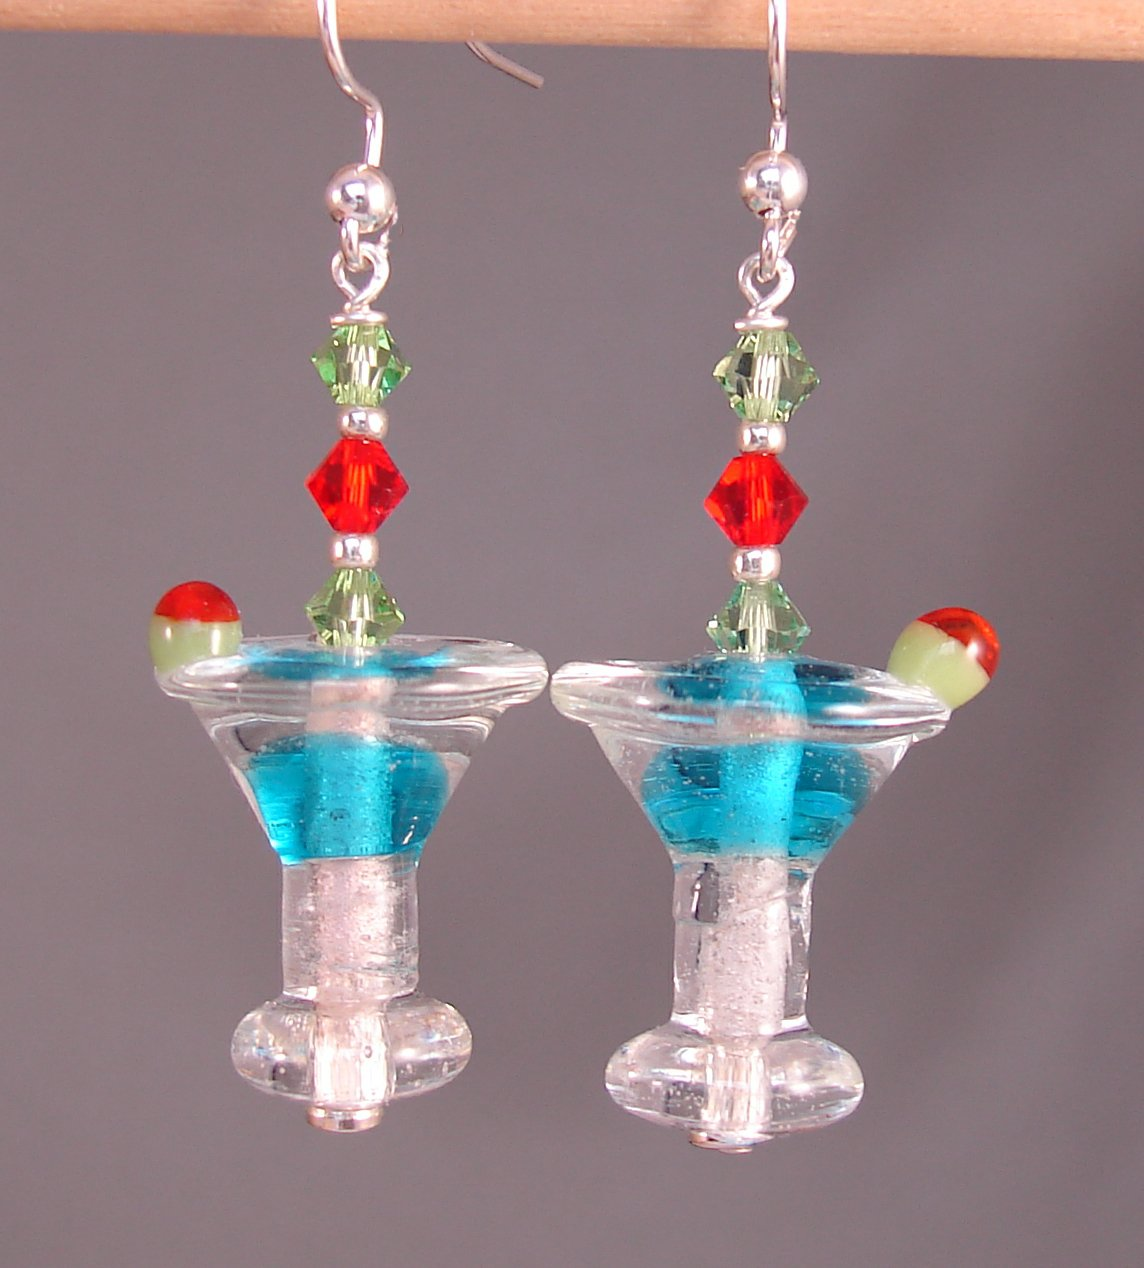 Blue Lampwork Glass Martini Cocktail / Drink Earrings with Swarovski Crystal Elements